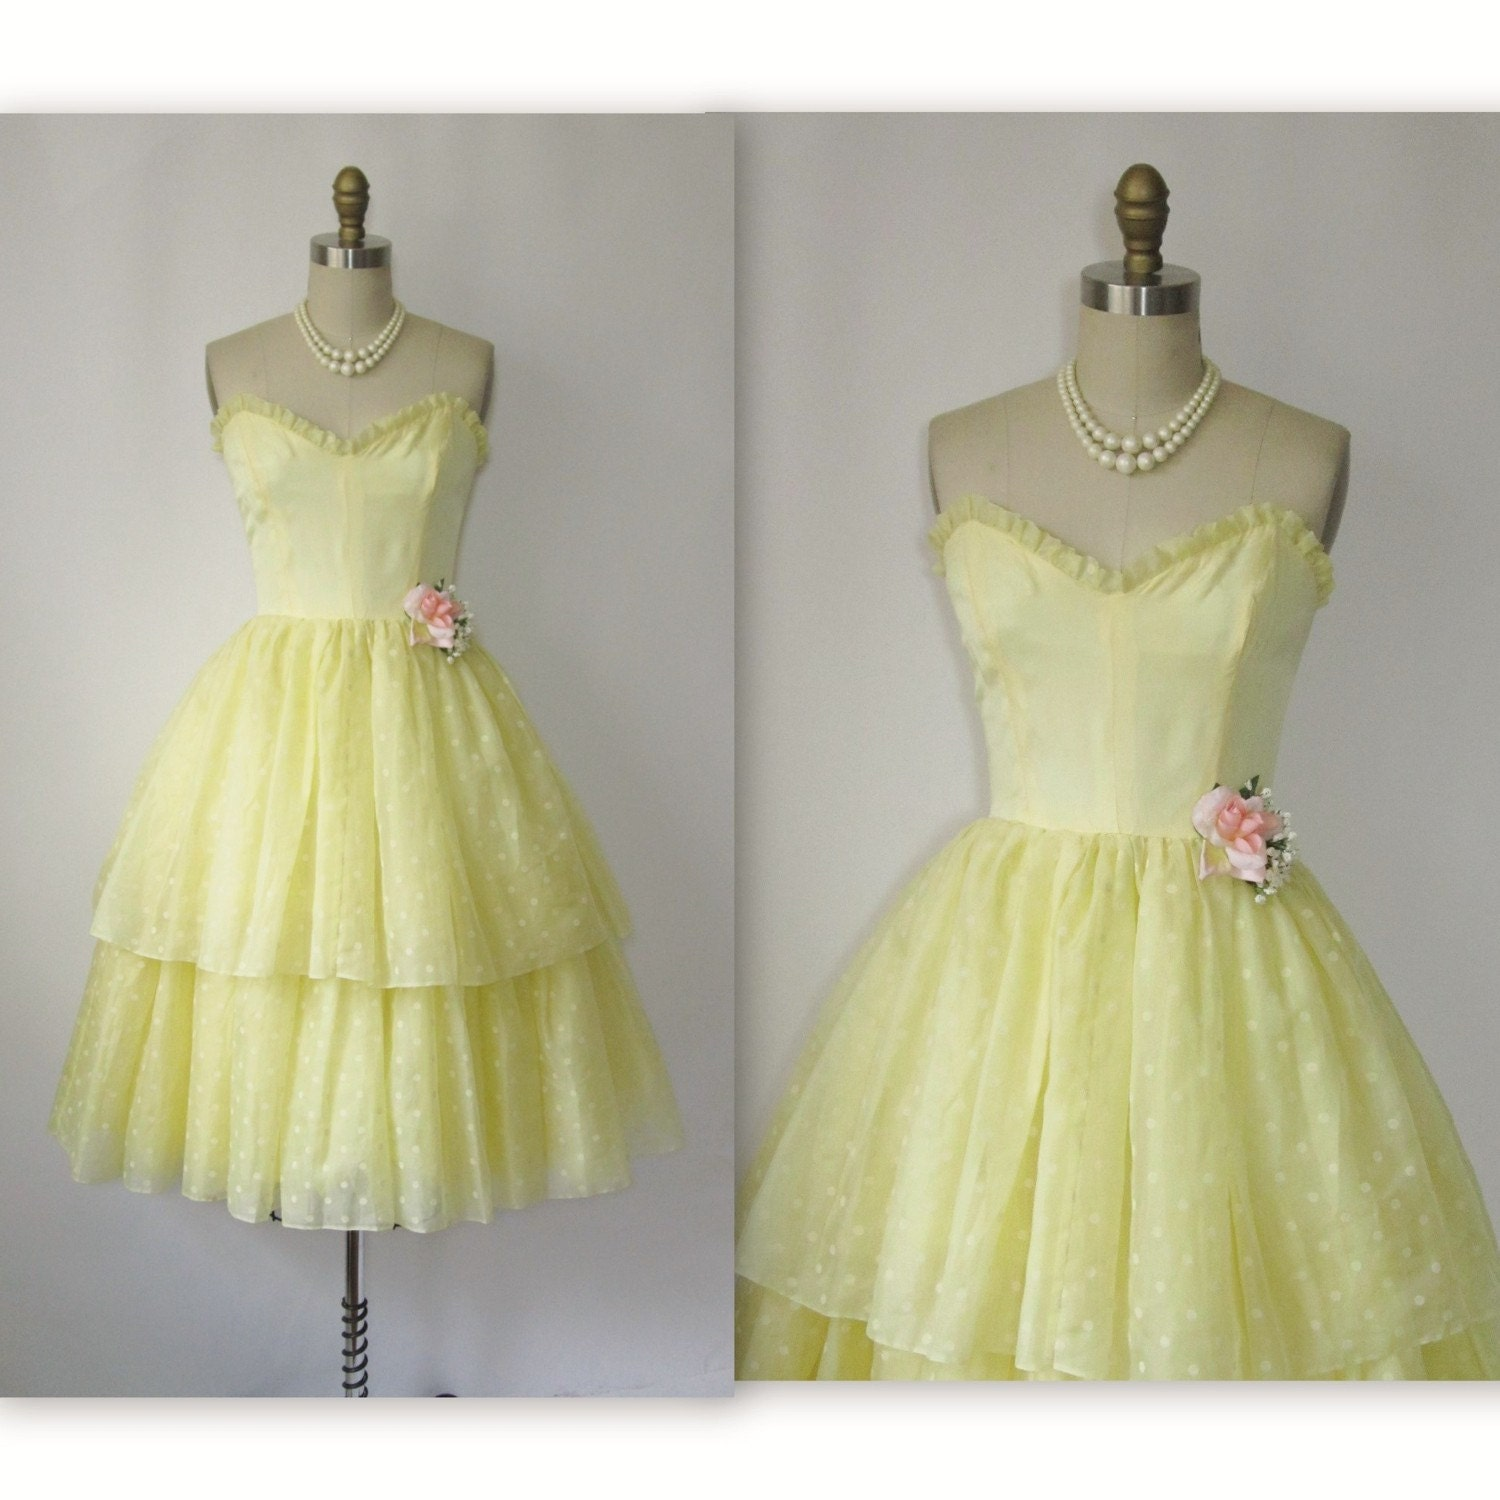 60s prom dress vintage 1960s flocked chiffon